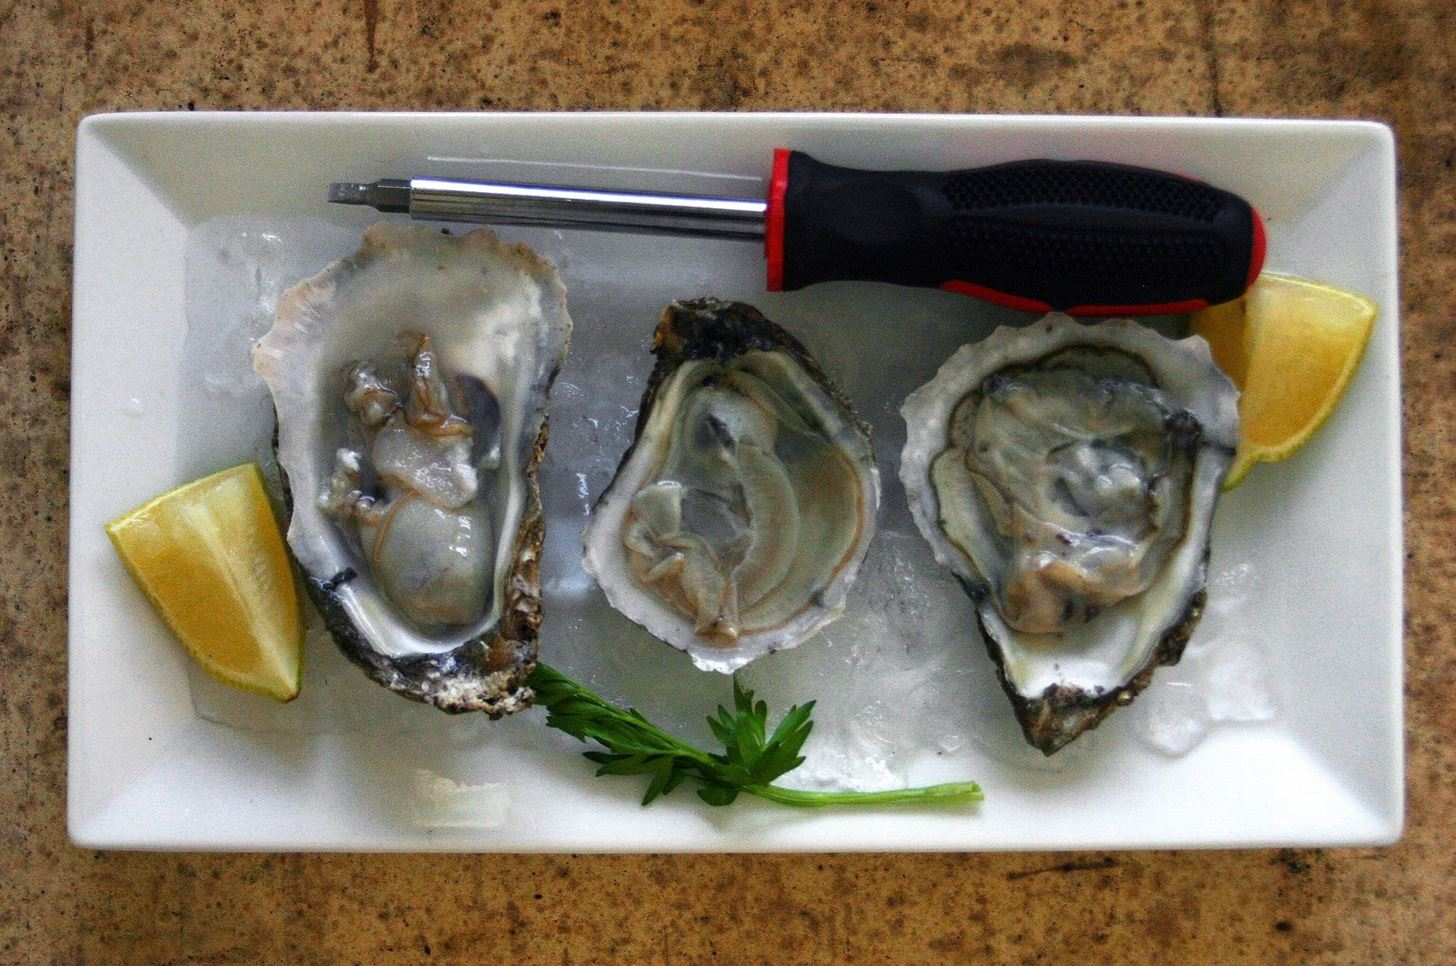 How to Shuck an Oyster Without an Oyster Knife